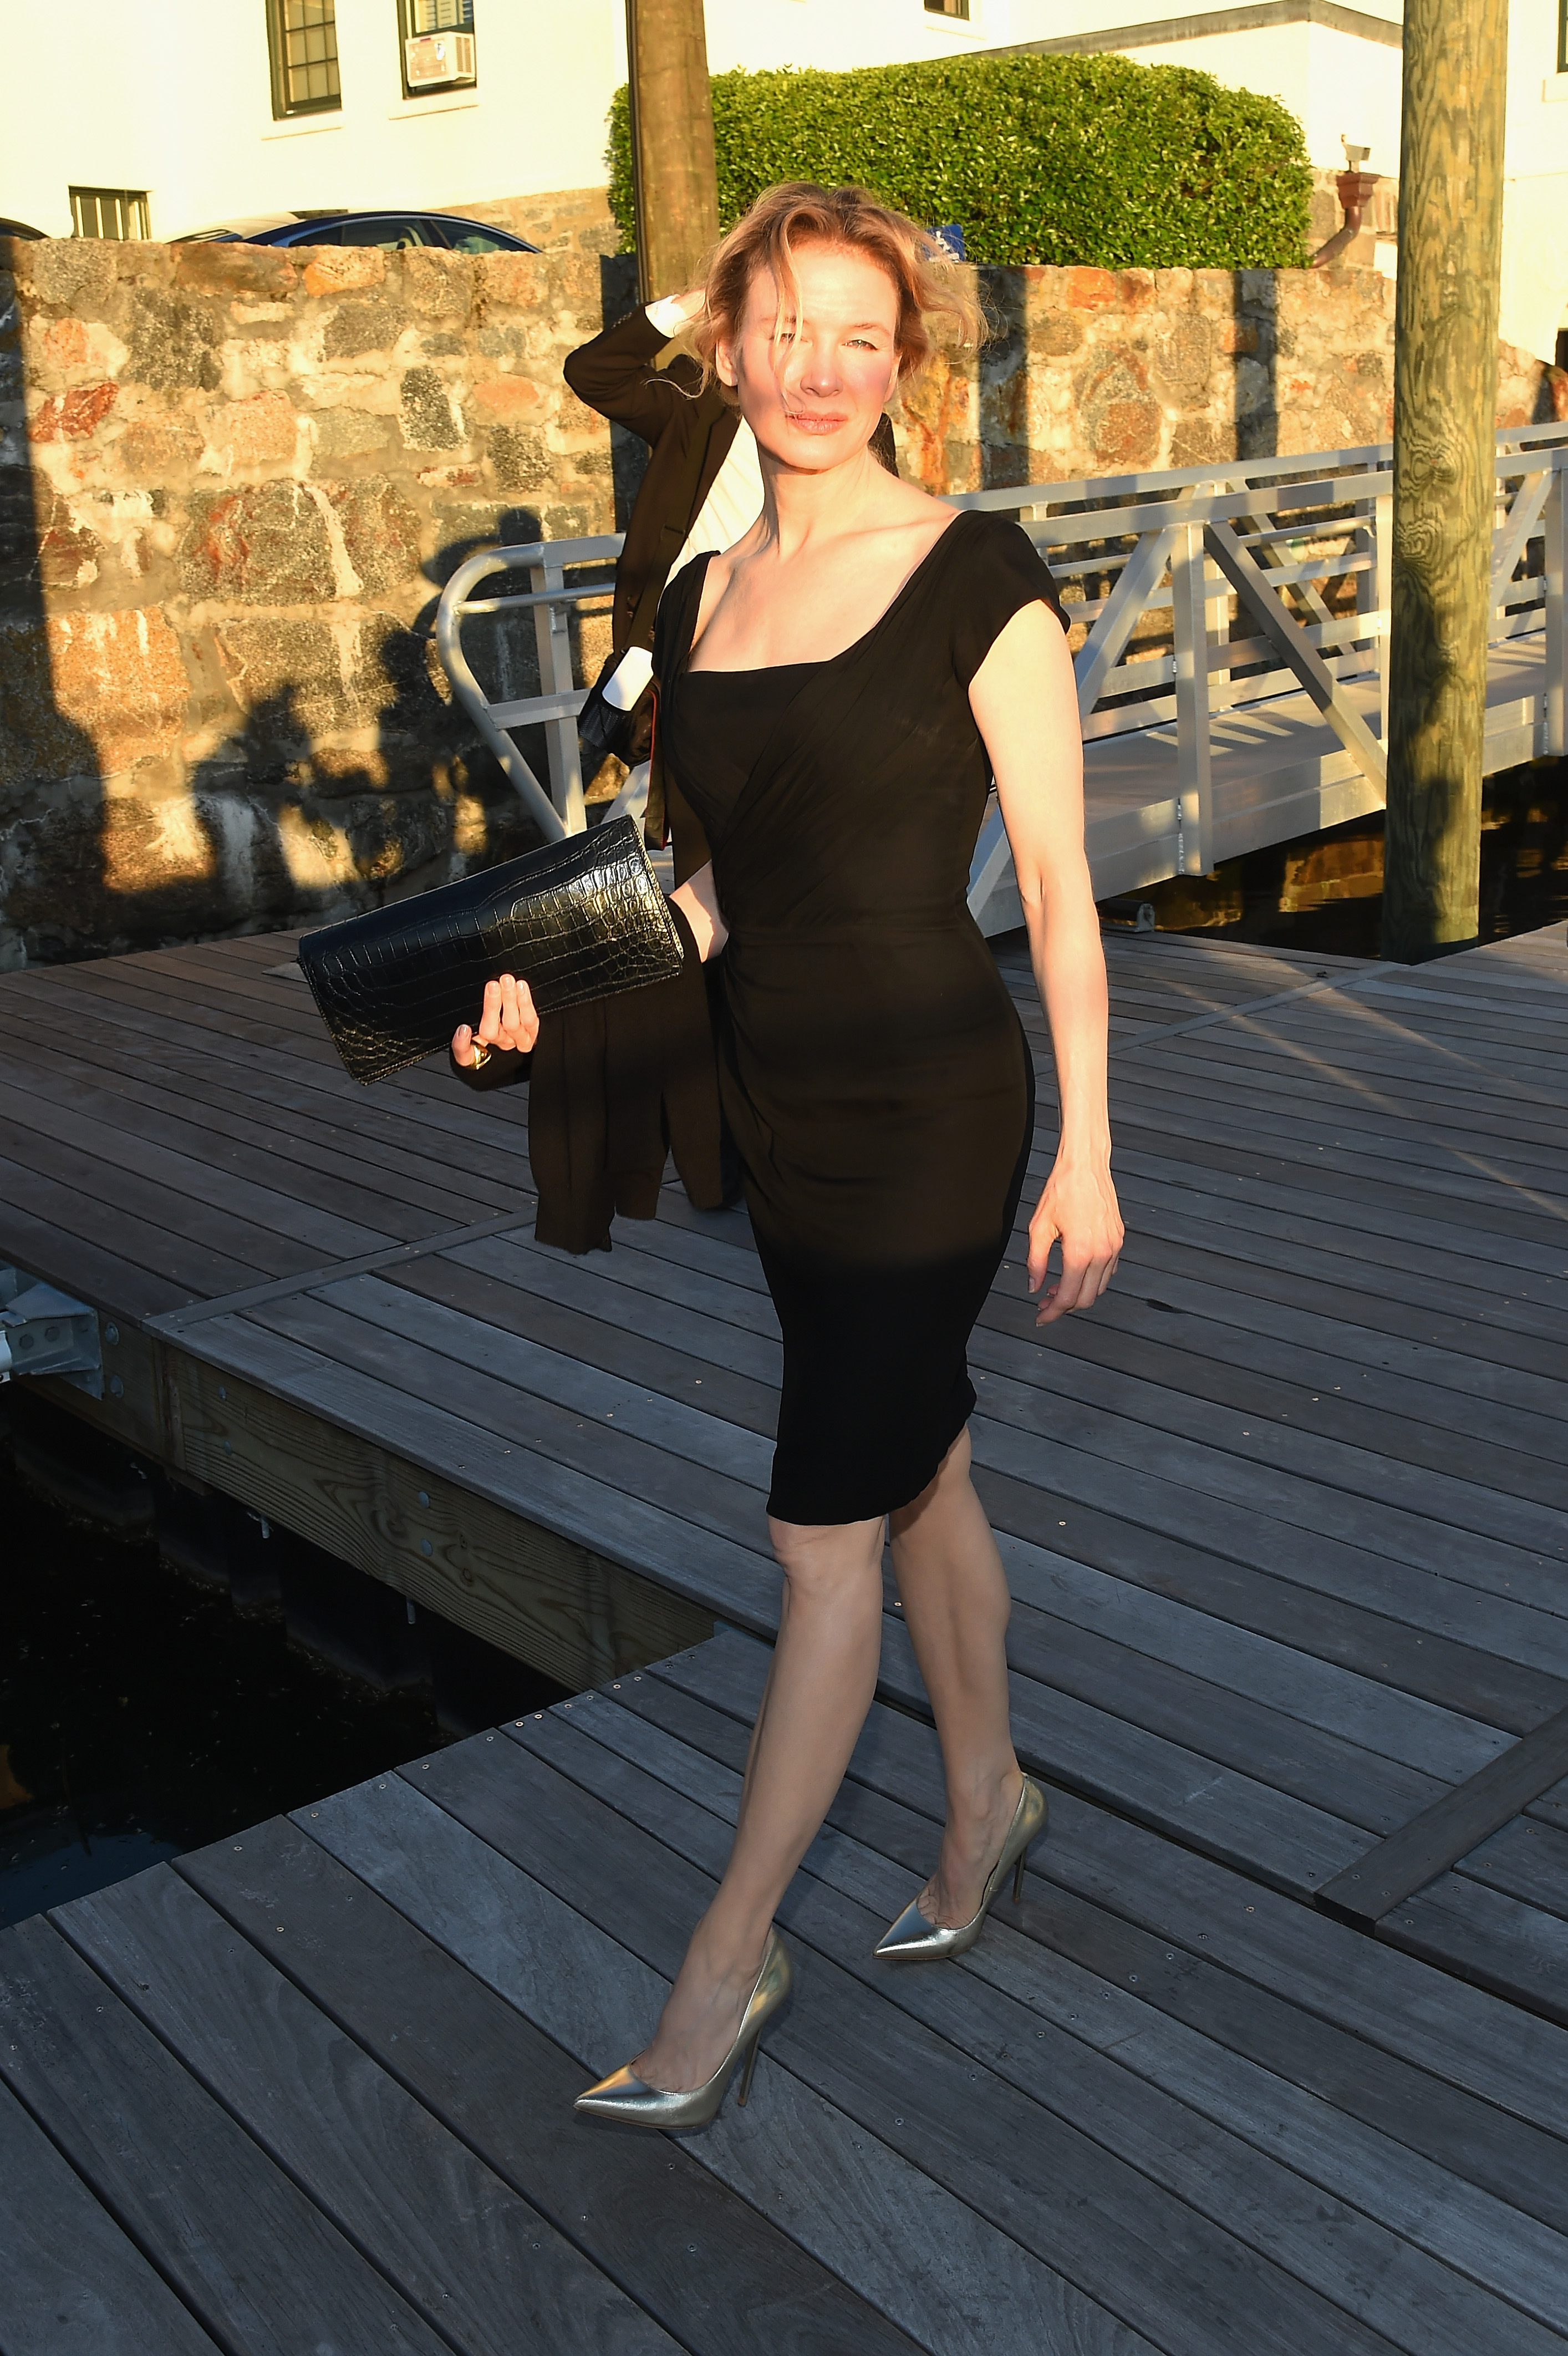 GREENWICH, CT - JUNE 01:  Renee Zellweger attends the Changemaker Boat Ride during the Greenwich International Film Festival, Day 1 on June 1, 2017 in Greenwich, Connecticut.  (Photo by Ben Gabbe/Getty Images for Greenwich International Film Festival)